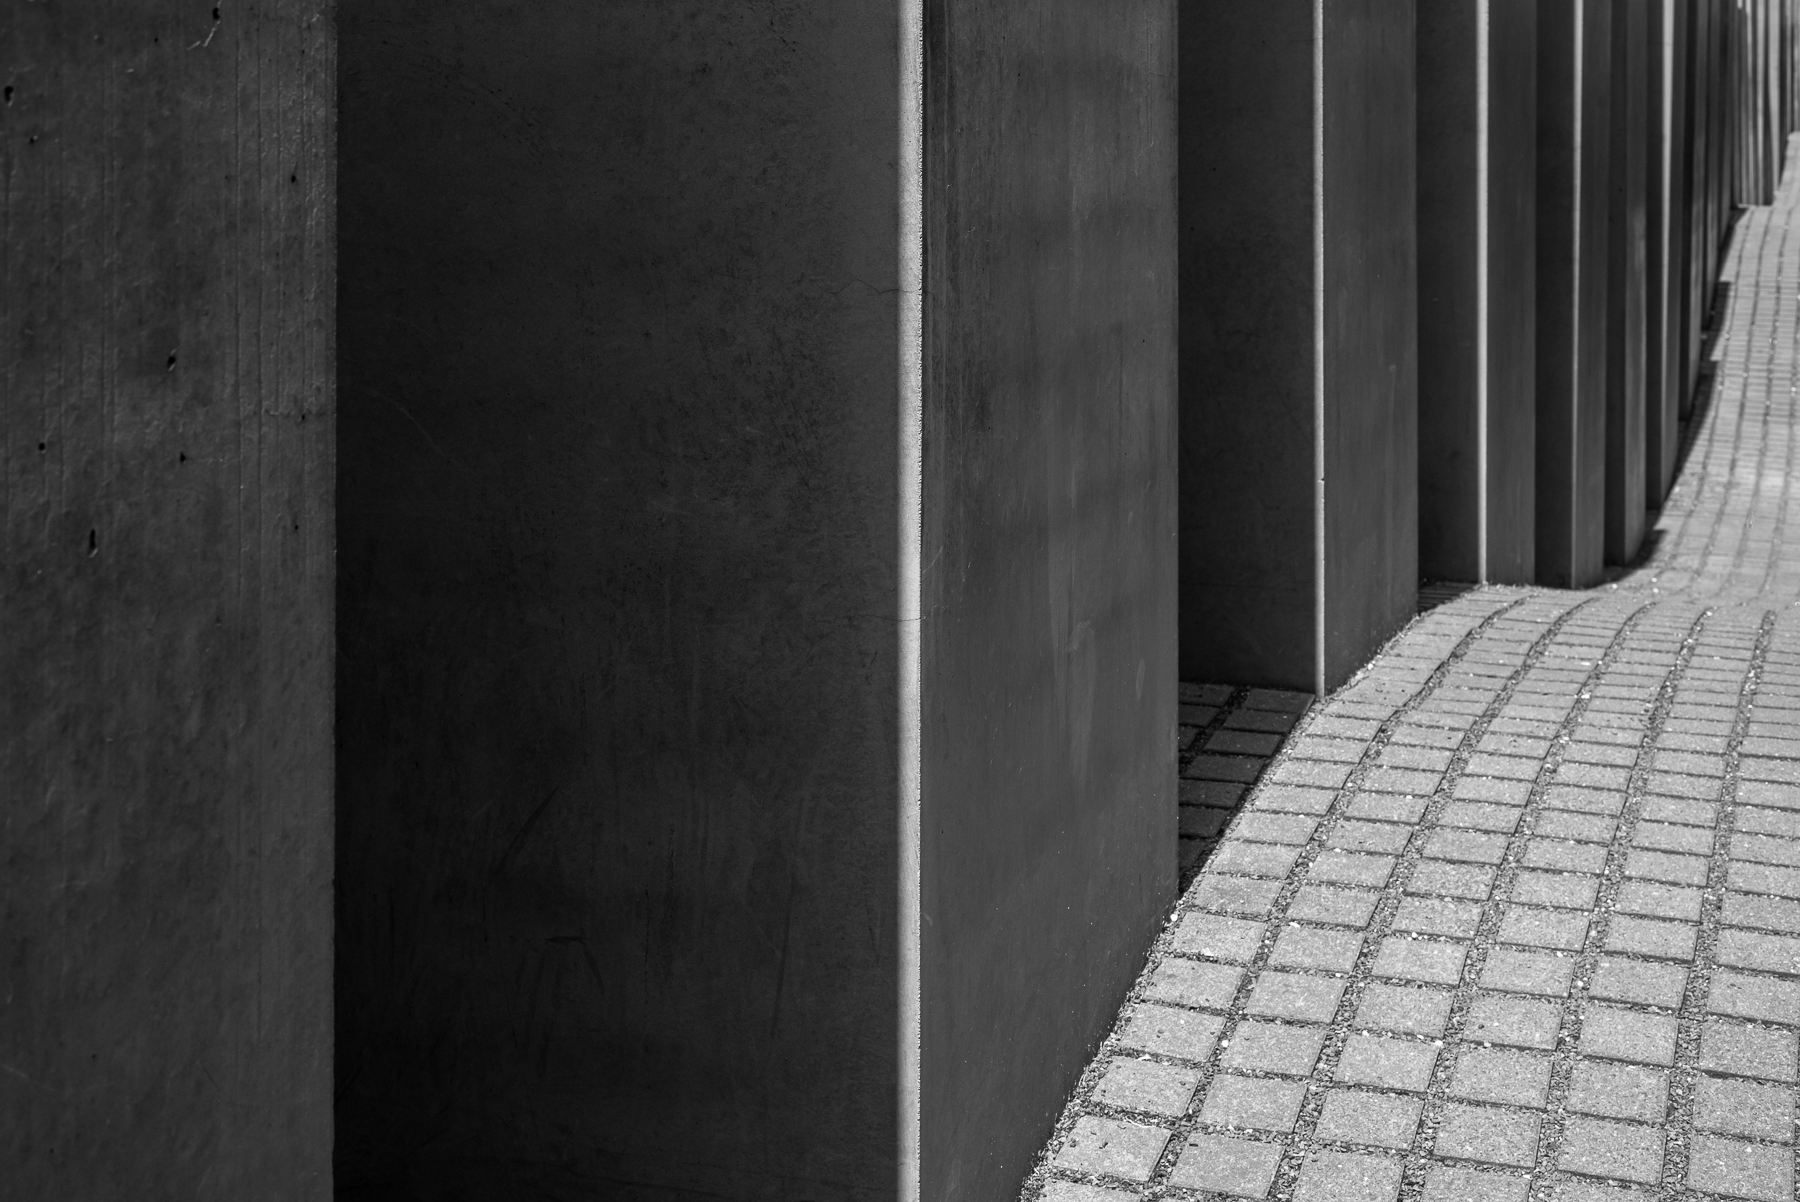 Memorial to the Murdered Jews of Europe, Berlin. © Mike Best